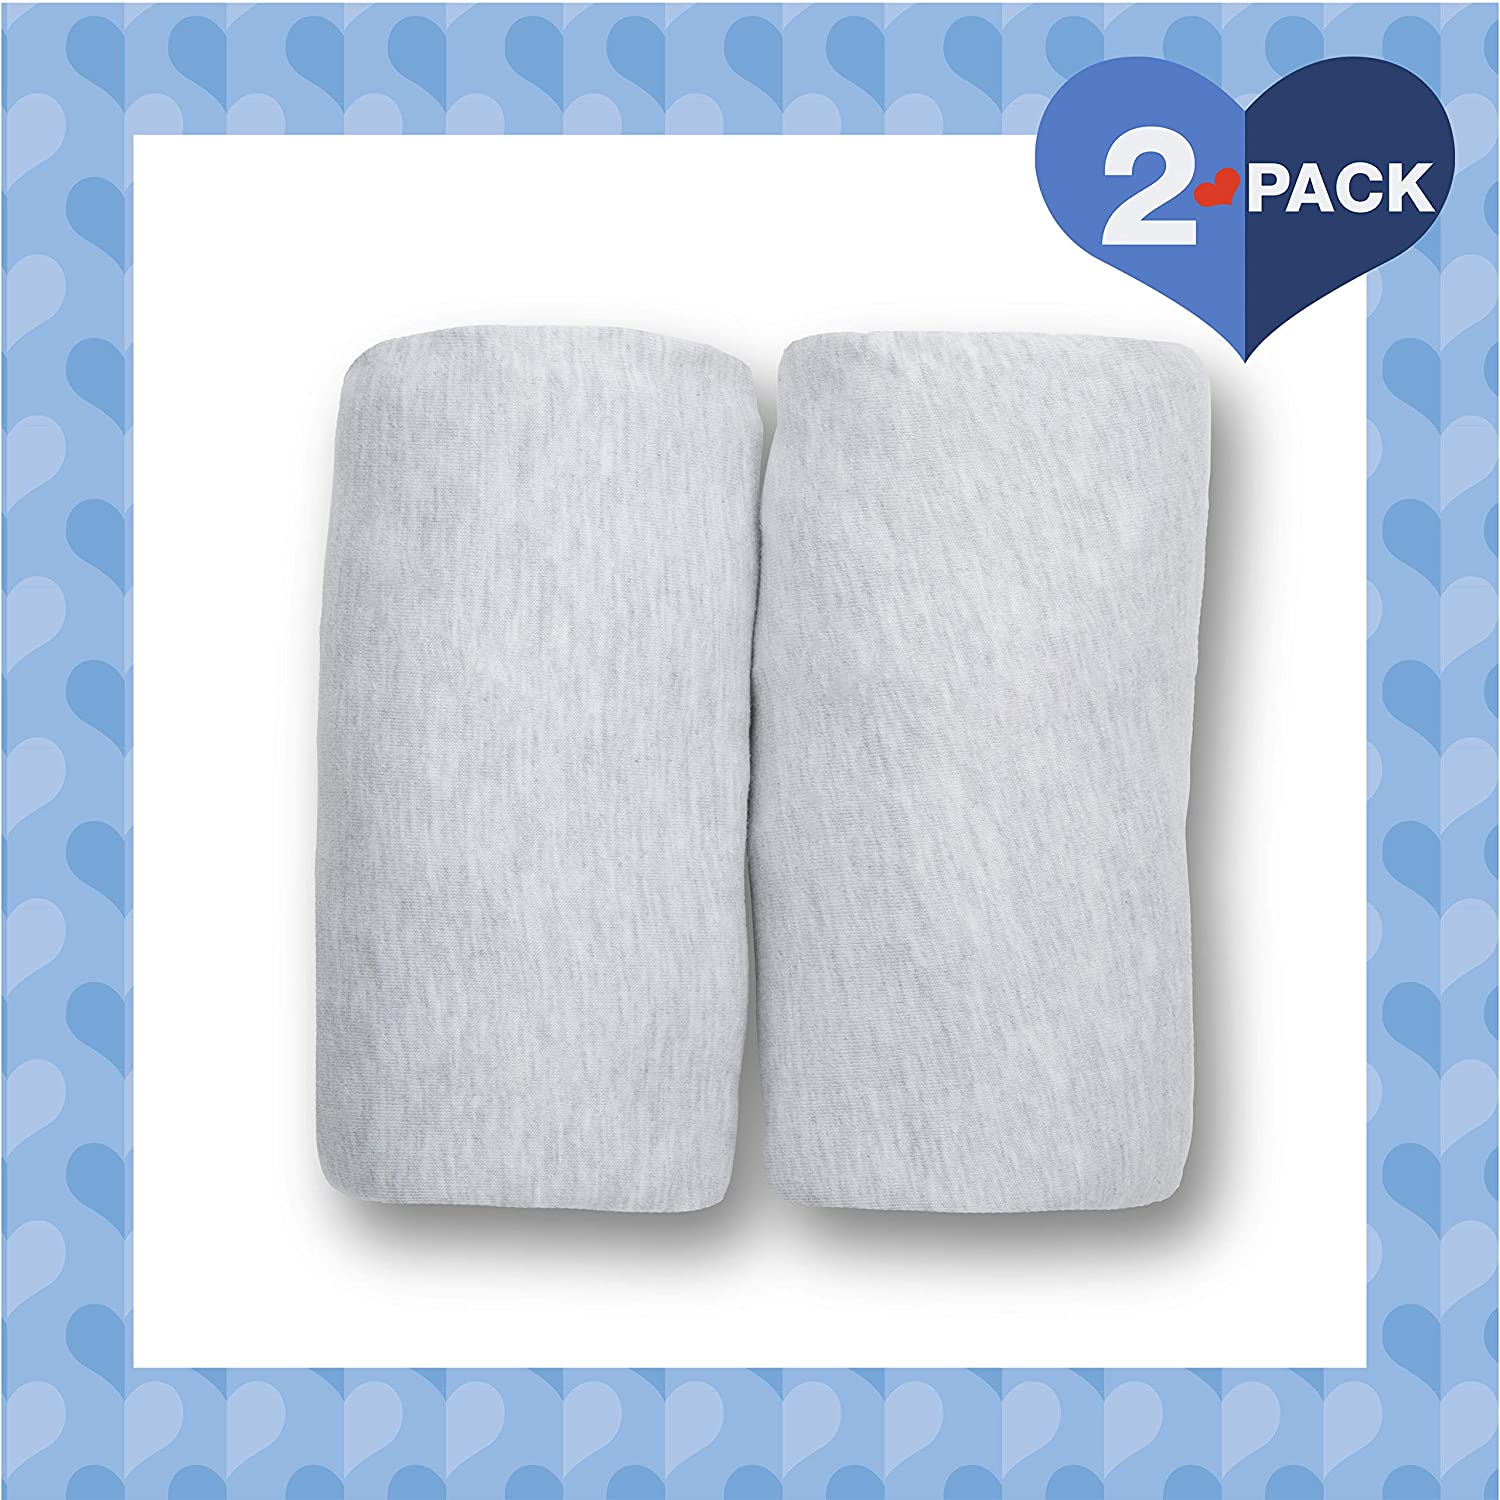 Delta Children Changing Pad Covers – 2 Pack | Solid Color | 100% Jersey Knit Cotton | Fits Standard Changing Pads, Heather Grey